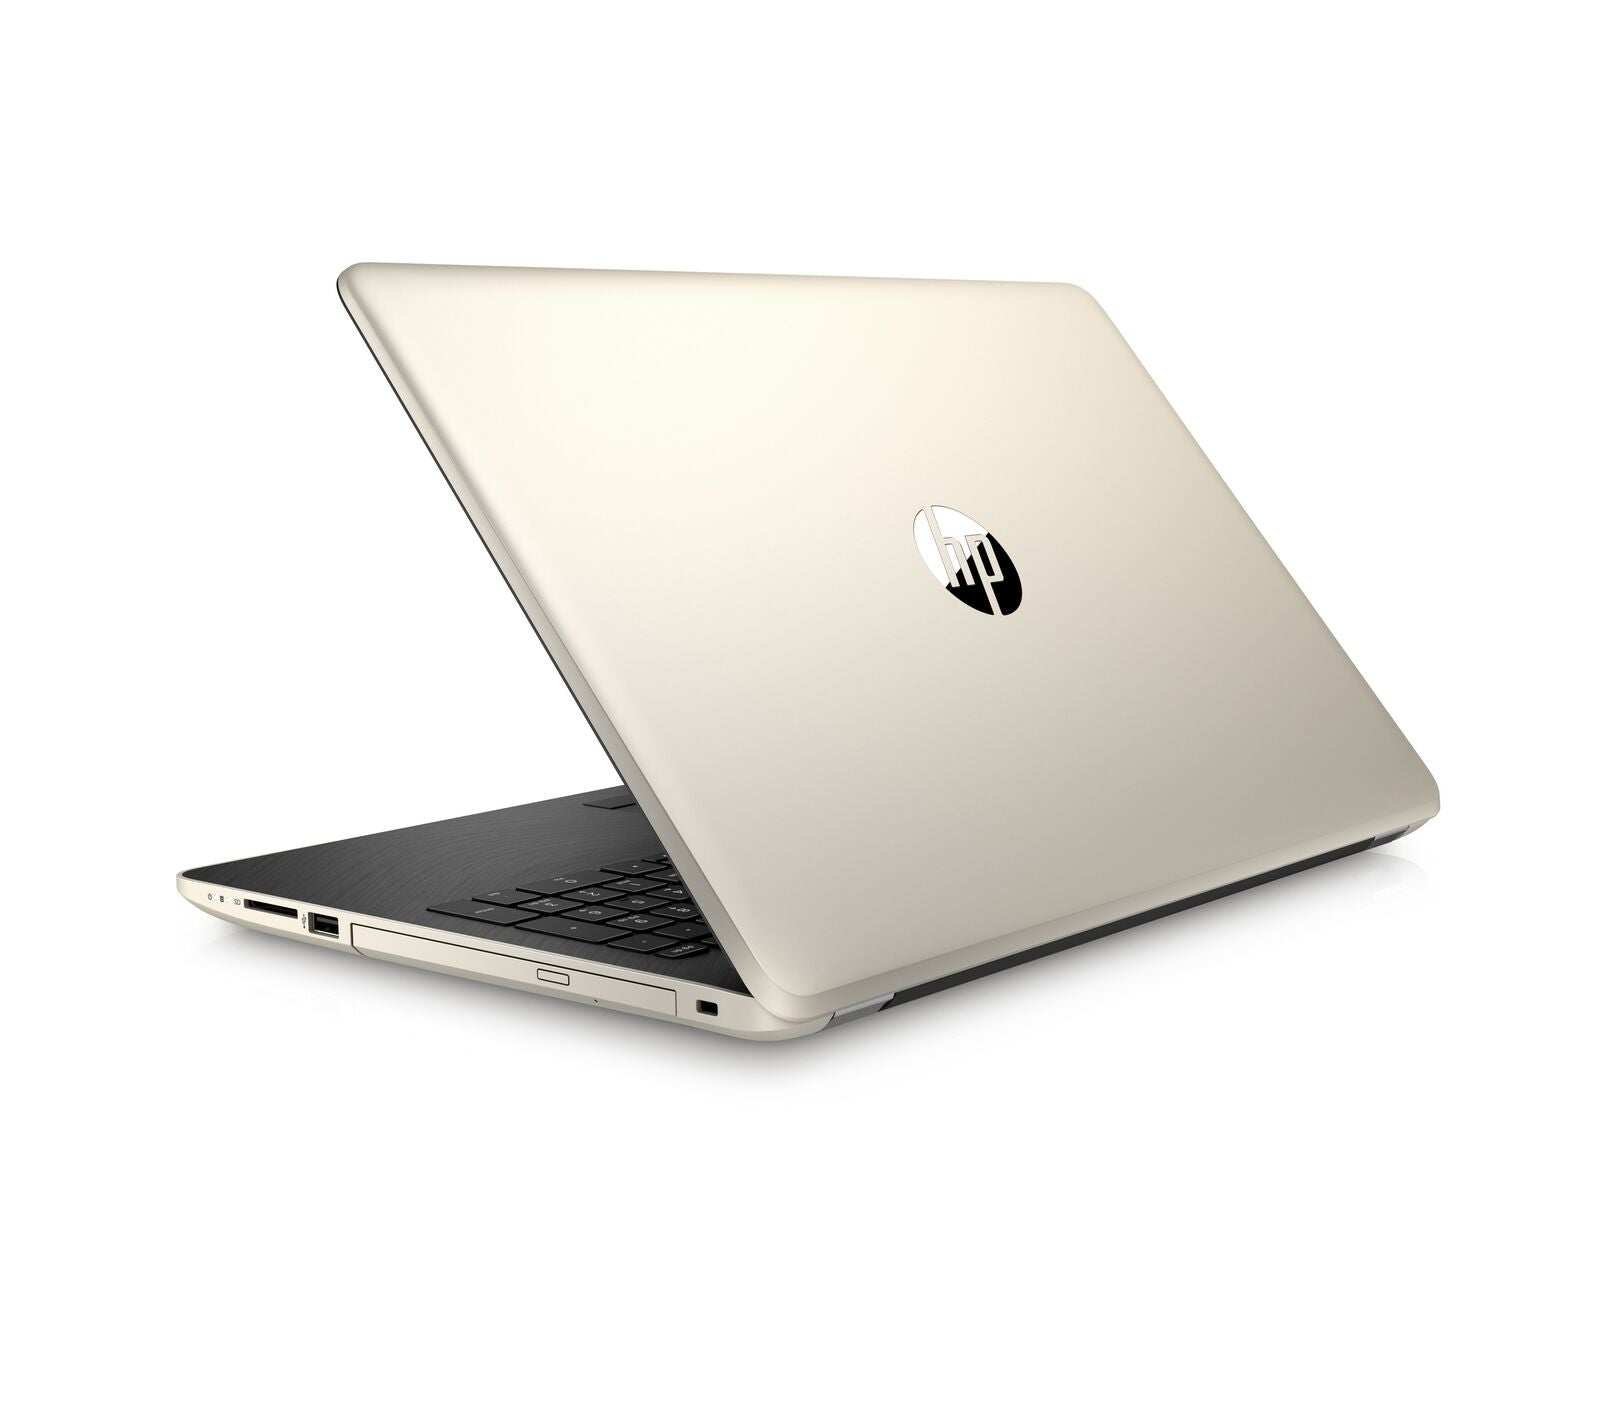 HP 15-bw006wm Notebook 15.6″ HD Touchscreen E2-9000e 1.5GHz 4GB RAM 500GB HDD Win 10 Home Soft Gold